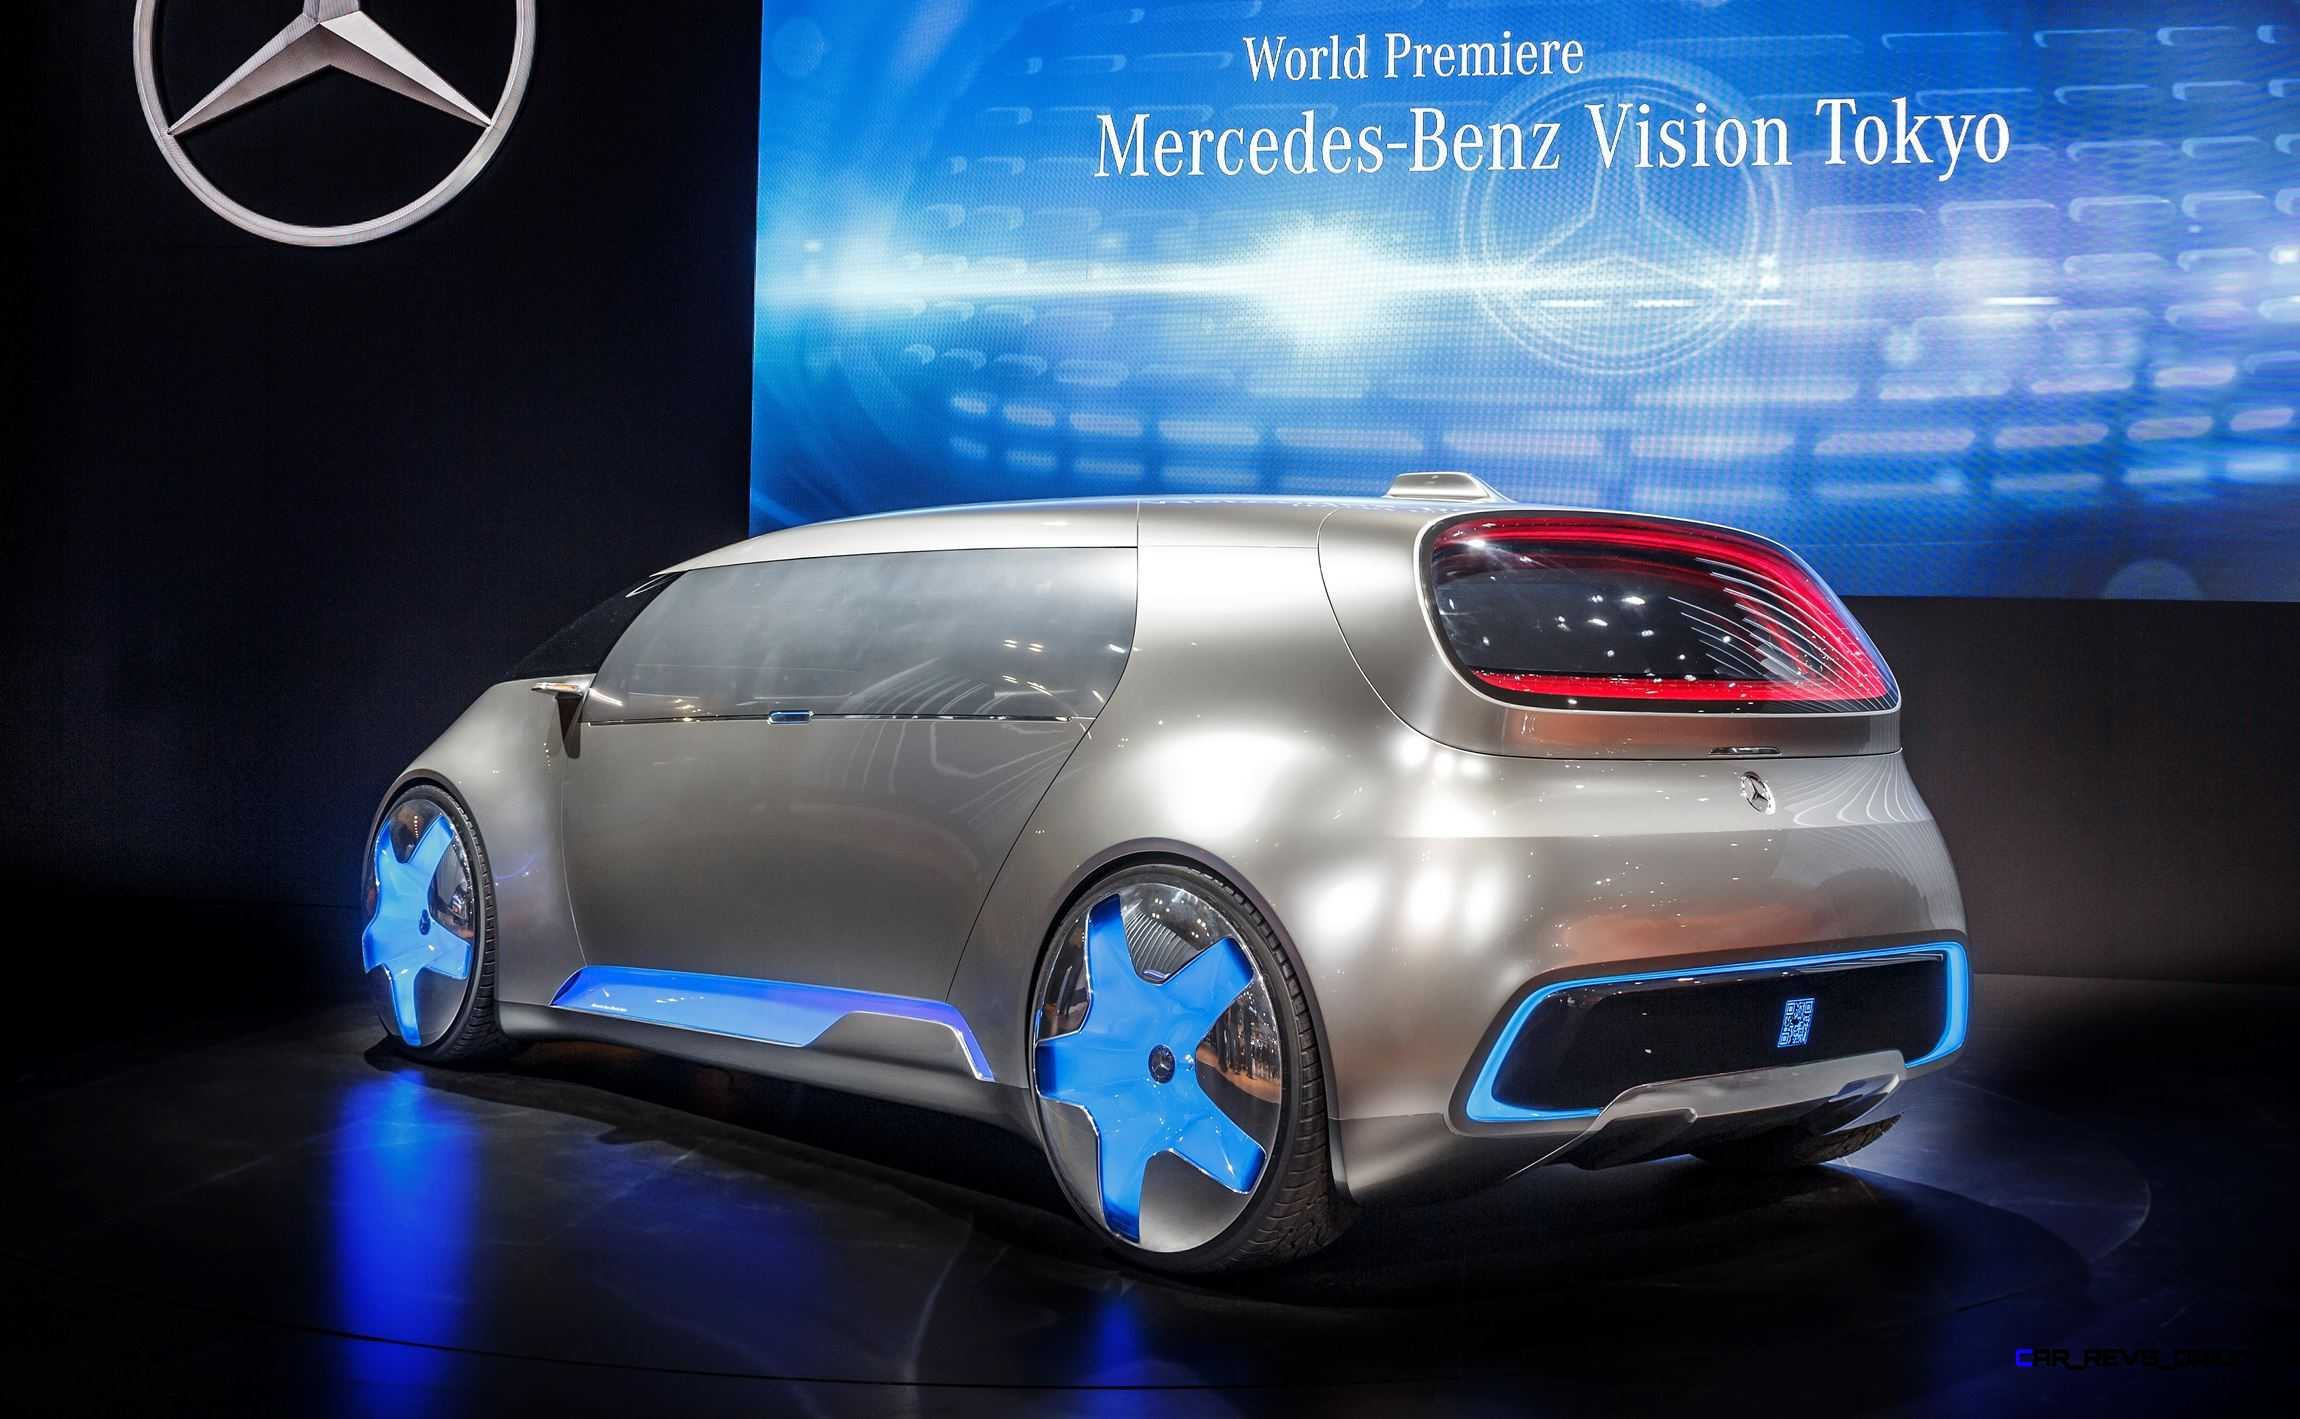 http://www.car-revs-daily.com/wp-content/uploads/2015/10/2015-Mercedes-Benz-Vision-Tokyo-20.jpg